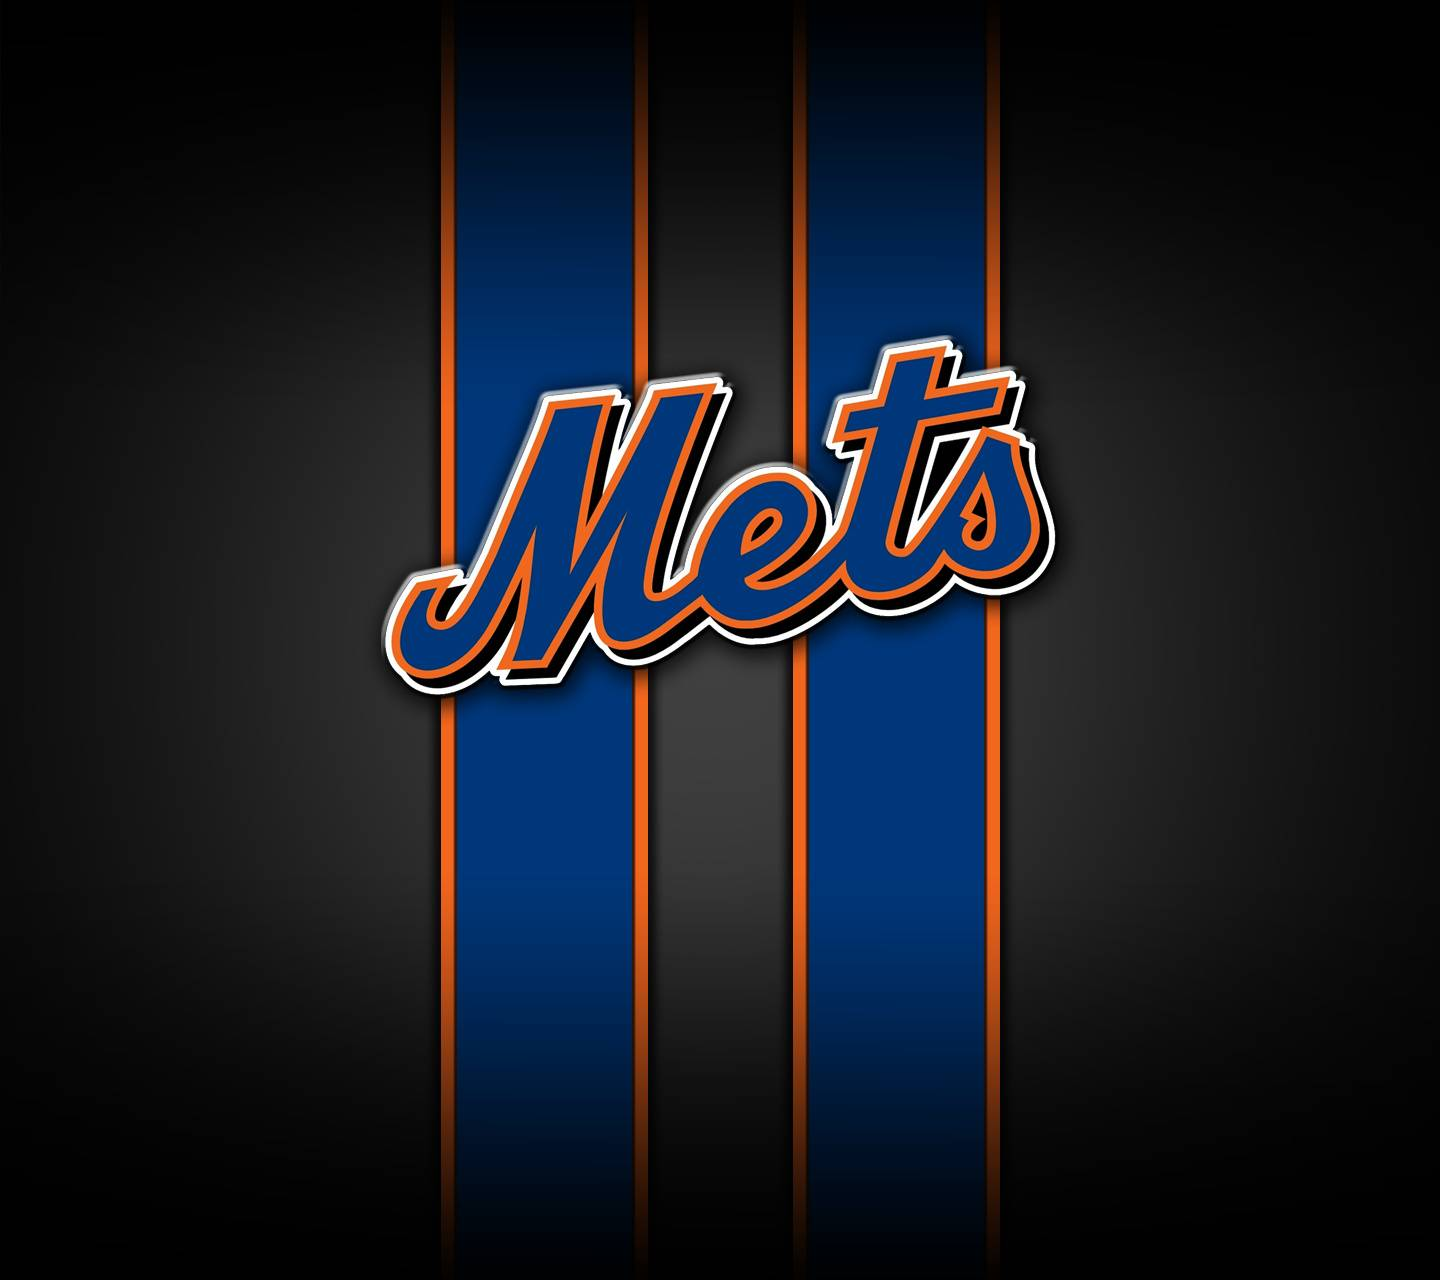 Wallpaper Iphone New York: New York Mets Wallpaper By Aka_jace